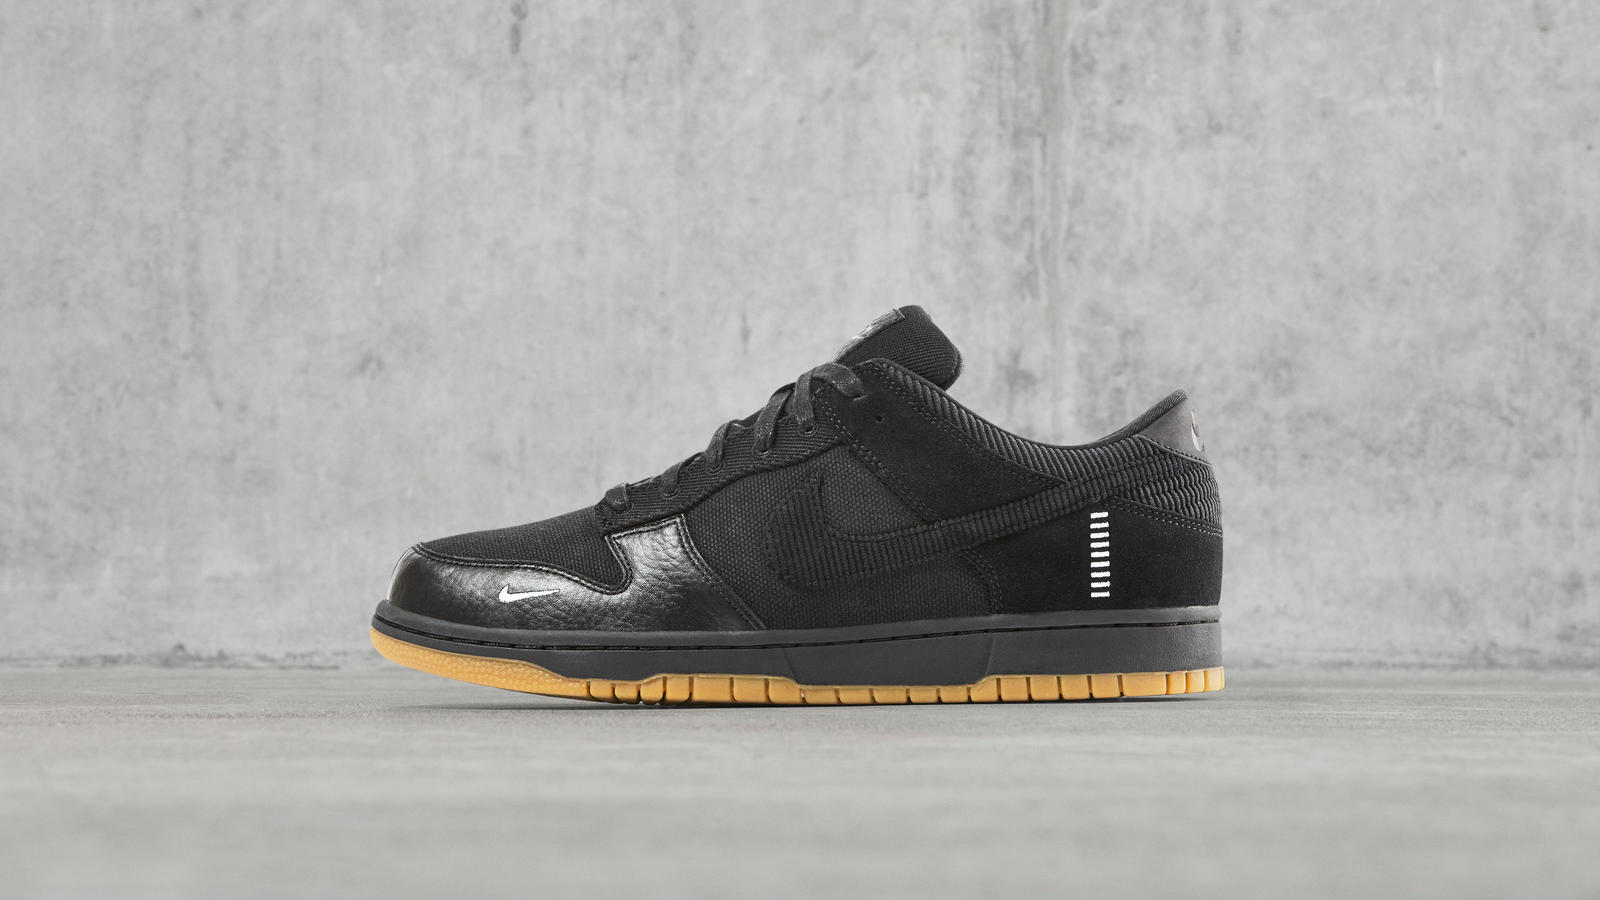 170512 footwear dunk low blk 0135 hd 1600